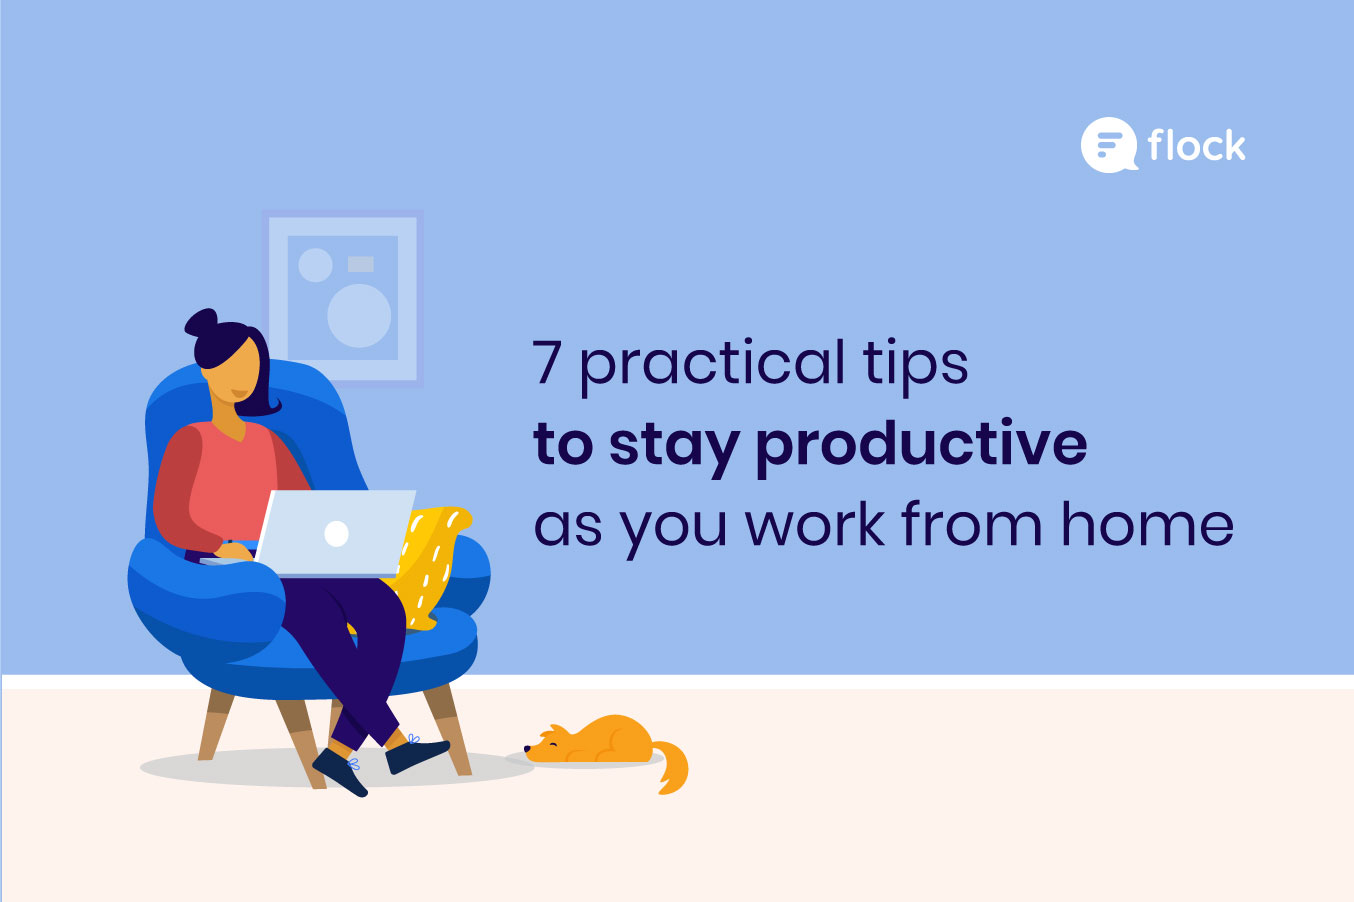 7 practical tips to stay productive as you work from home